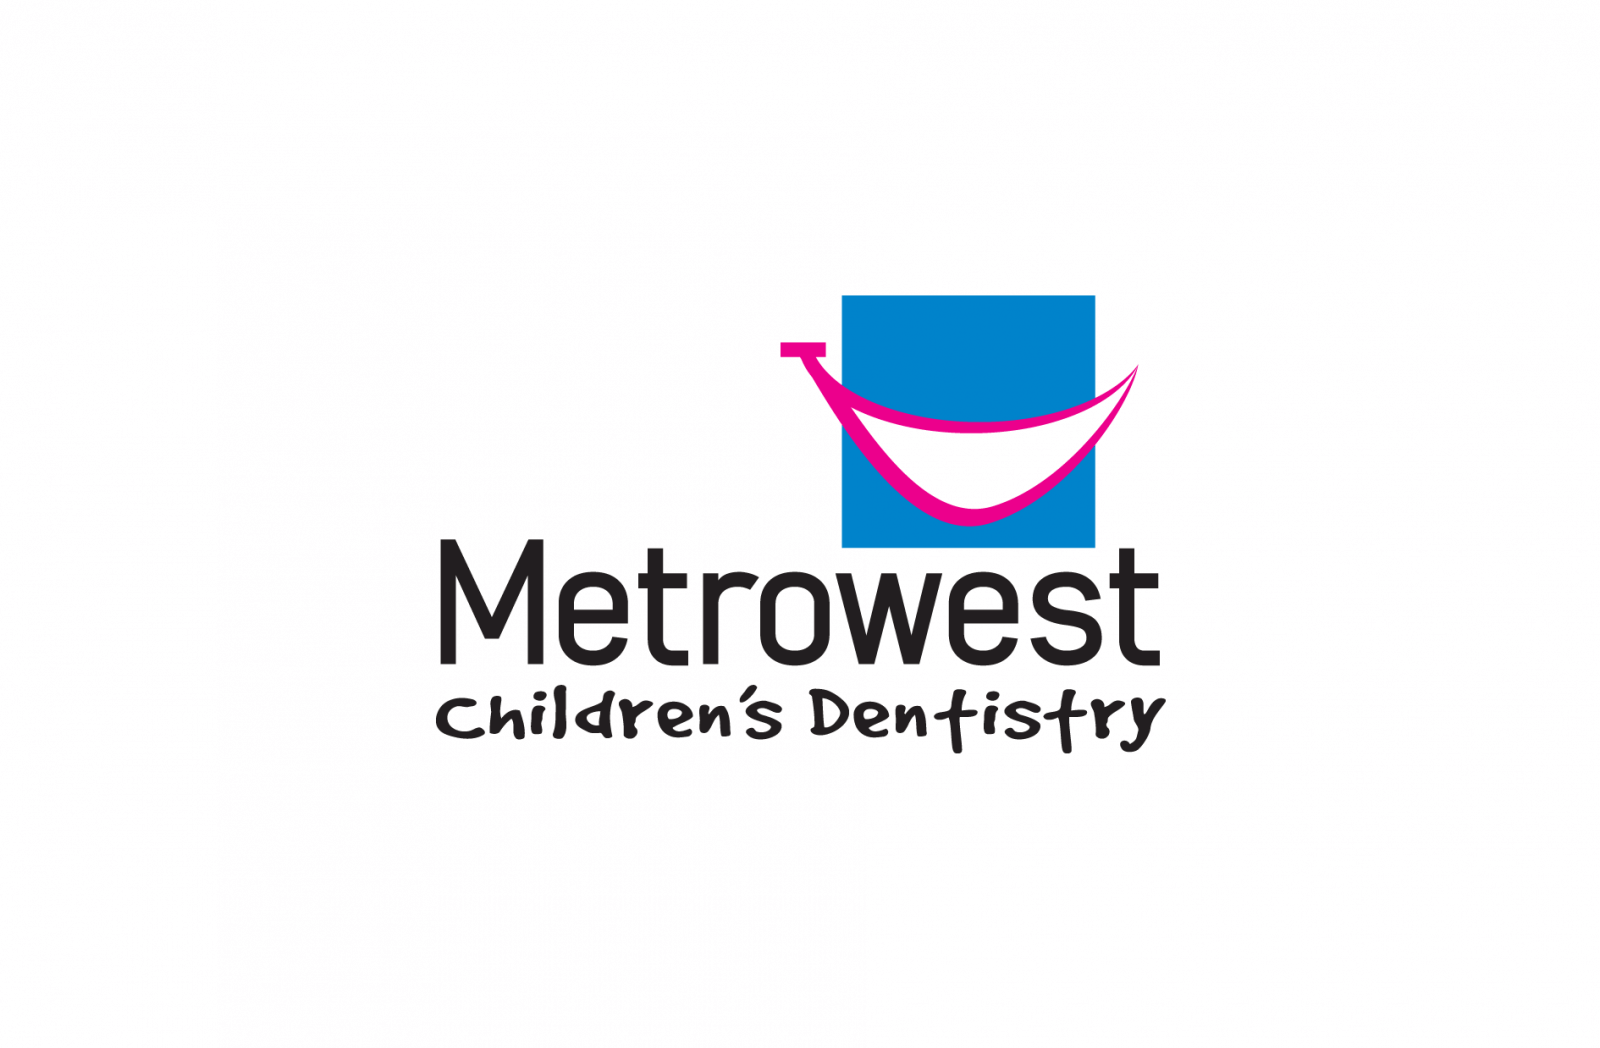 Metrowest Children's Dentistry Logo